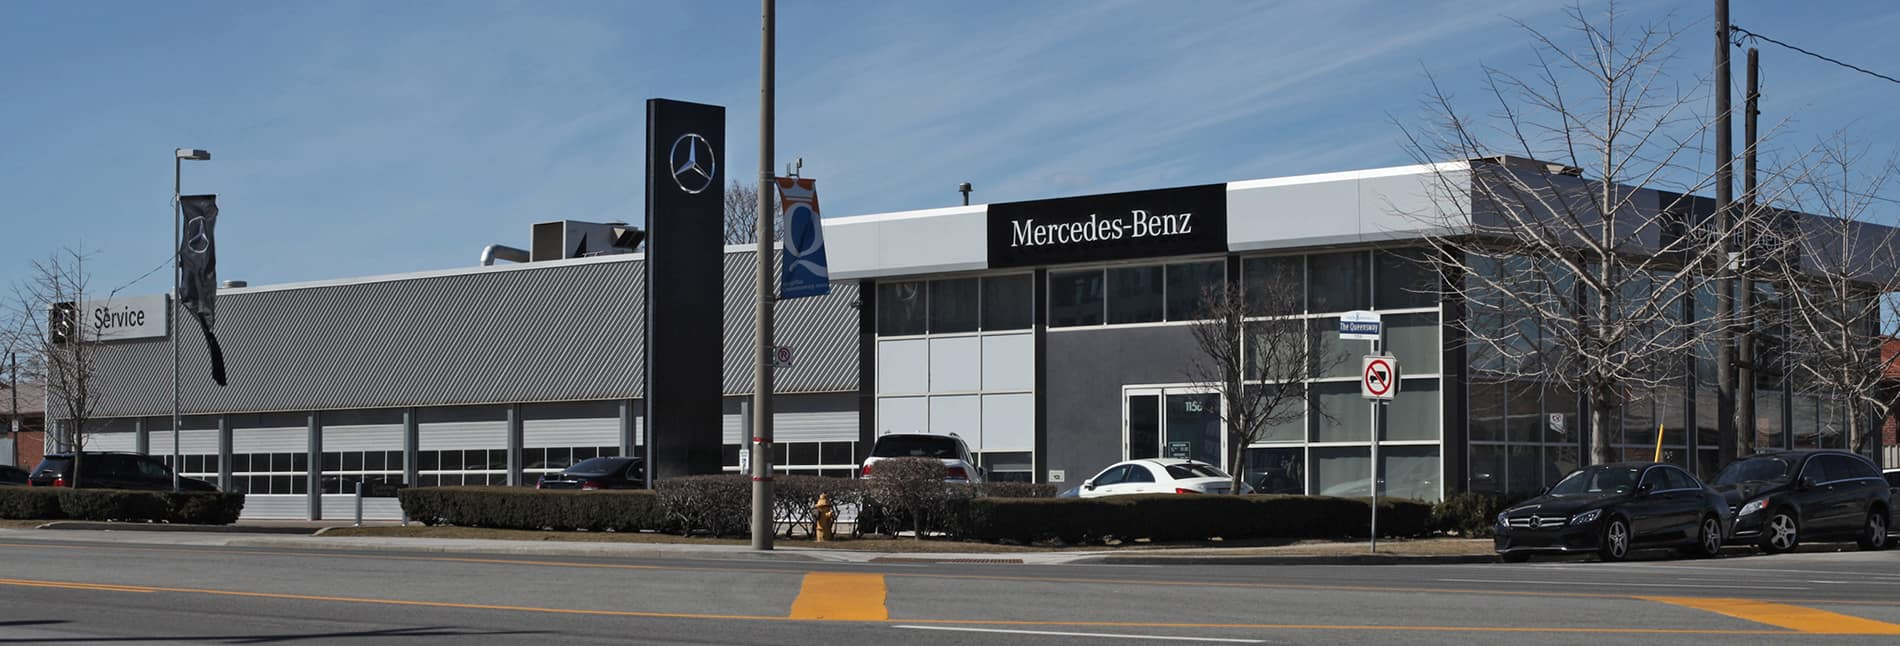 Mercedes Benz Etobicoke Service 1156 The Queensway